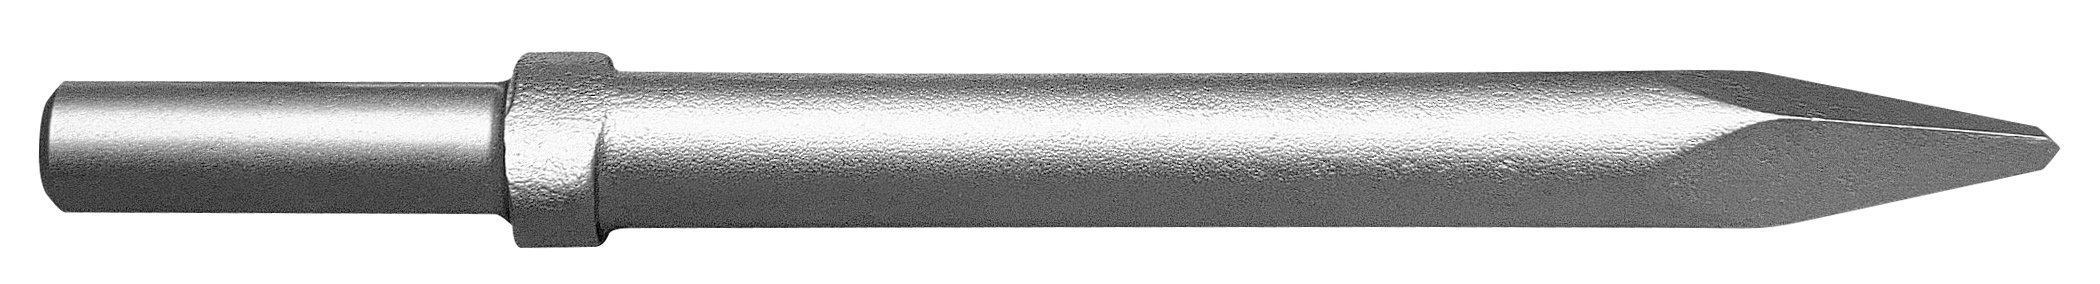 Champion Chisel, 12-Inch Long .680 Round Shank Oval Collar Chipping Hammer Moil or Bull Point